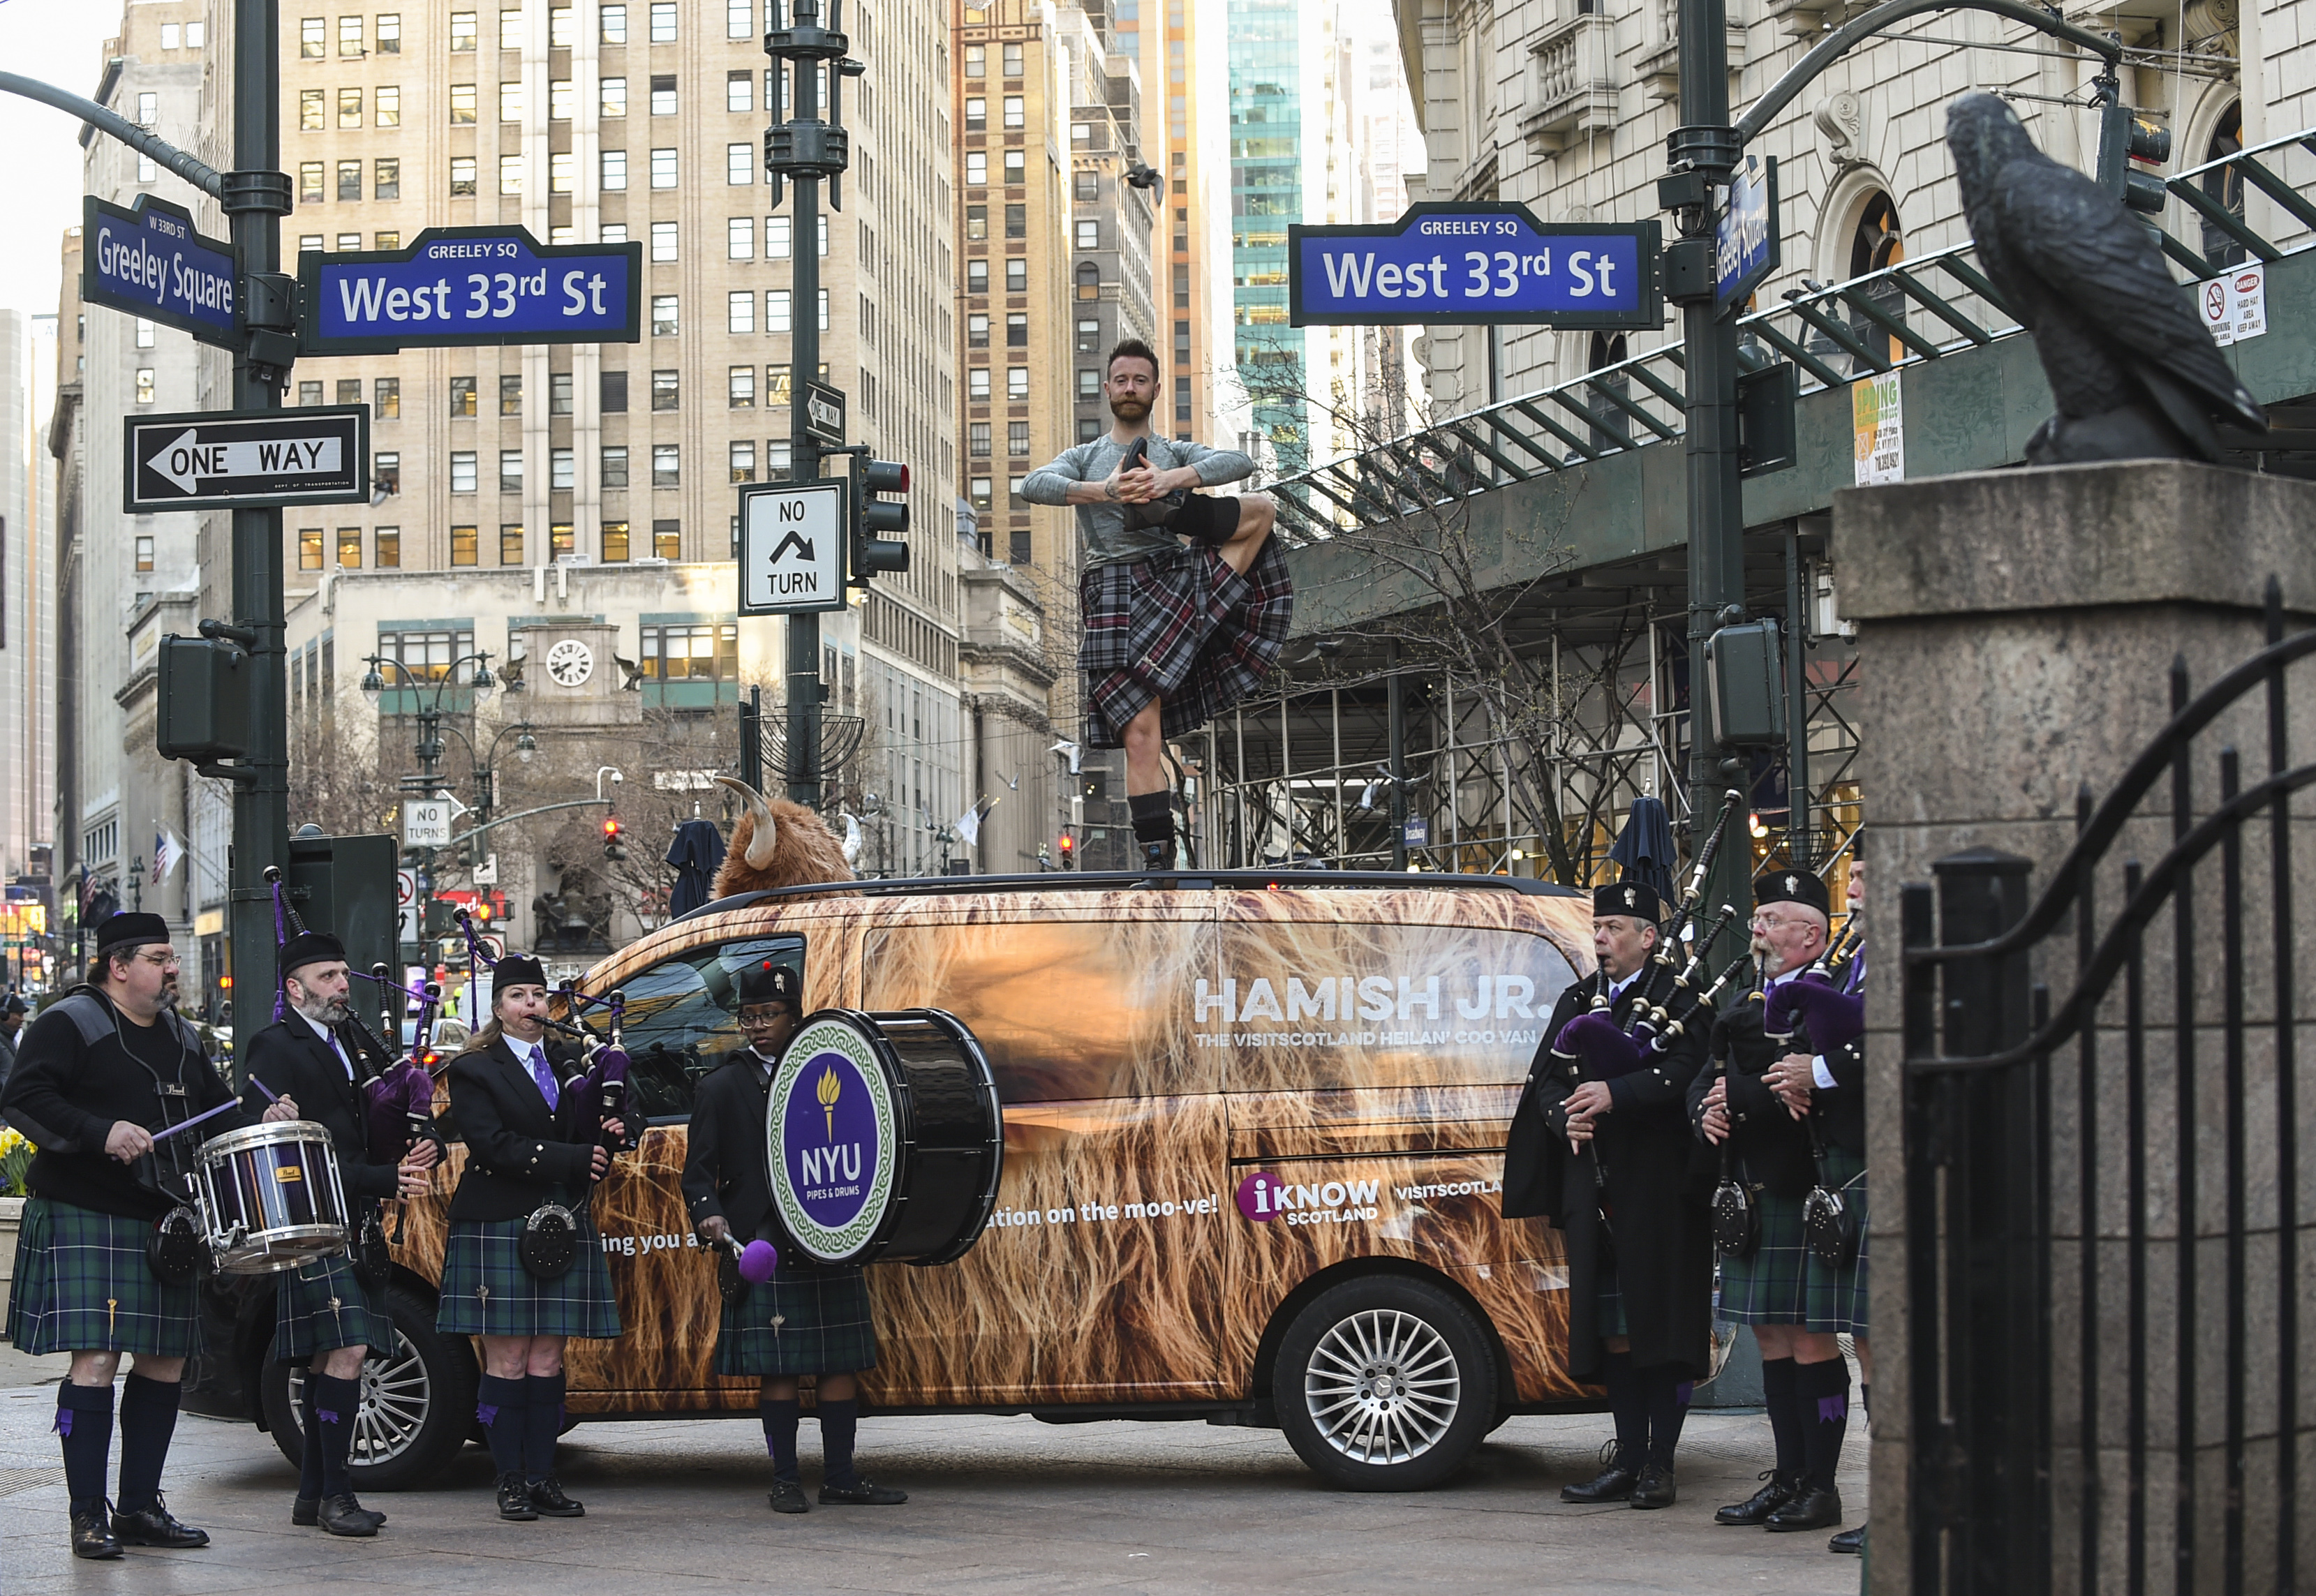 Hamish The Coo van & man doing yoga in a kilt in NYC